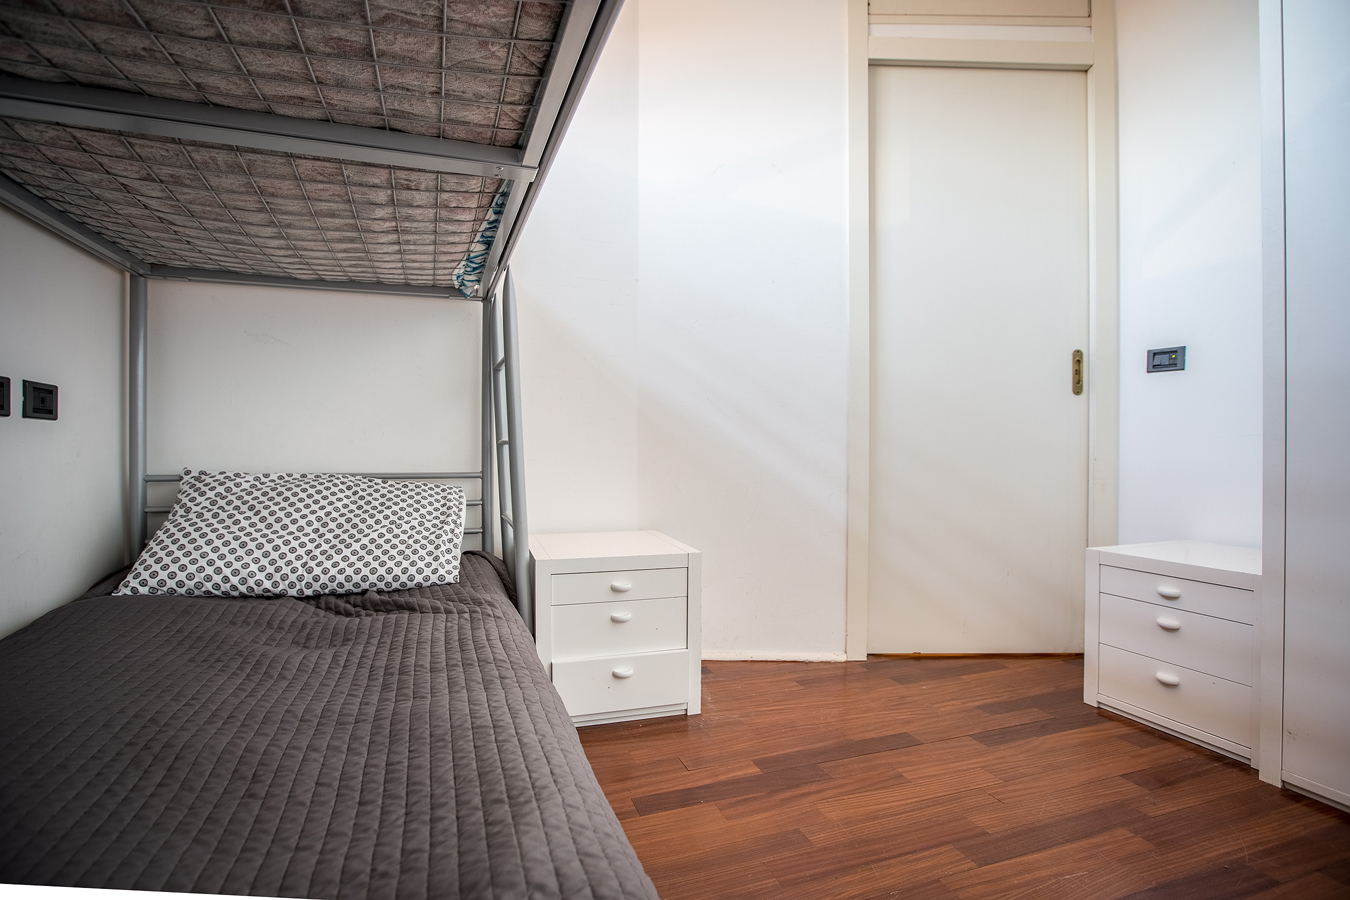 Student Accomodation for rent in double room in Via Stadera, 12, in Milano, Italy